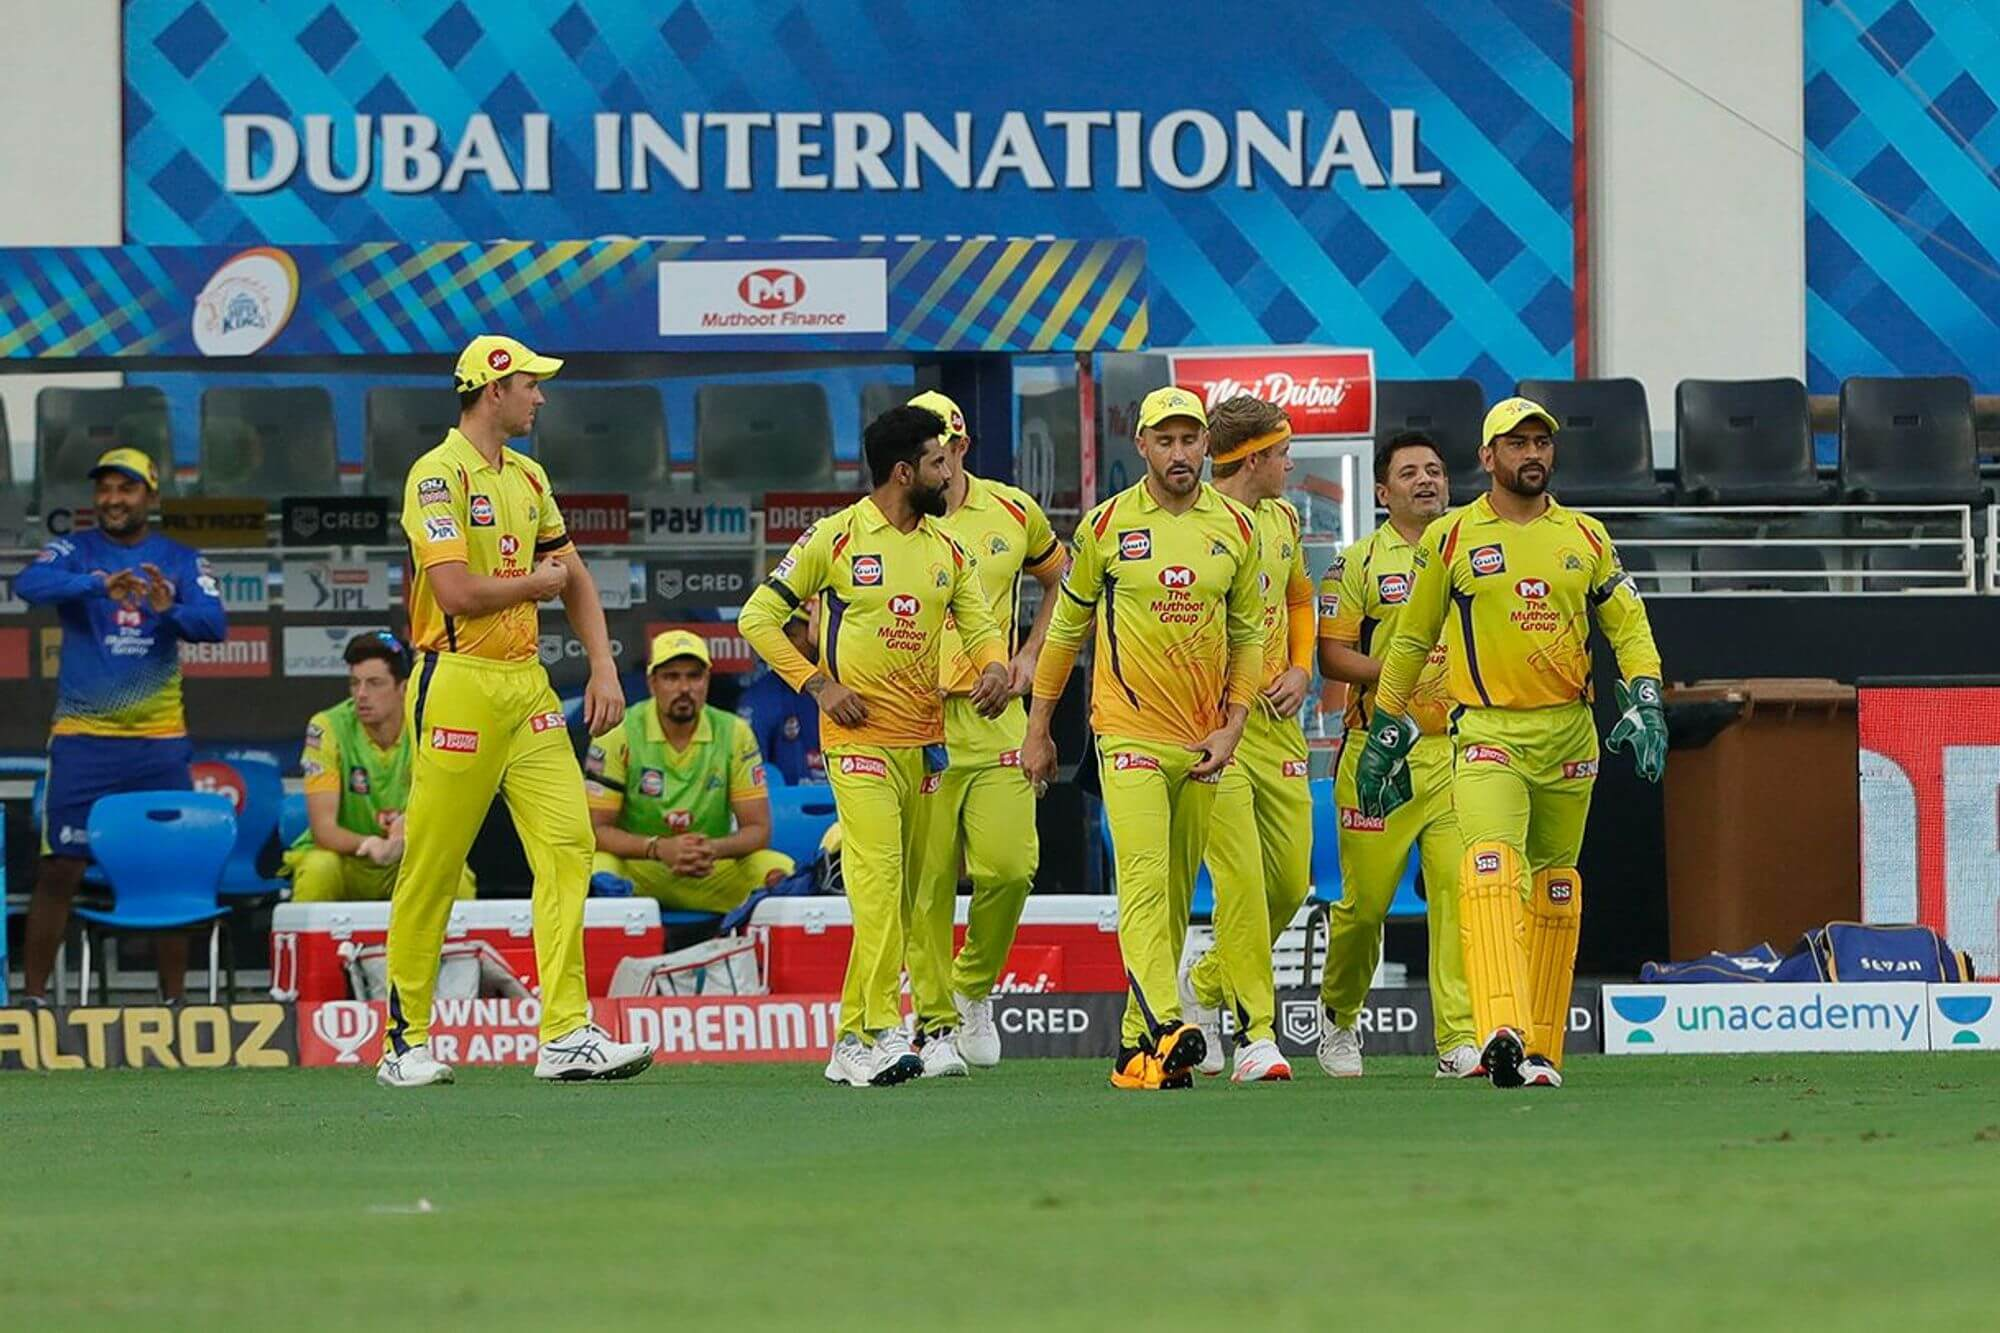 IPL 2020: CSK got off to their worst-ever start after losing first four wickets on just 3 runs against MI